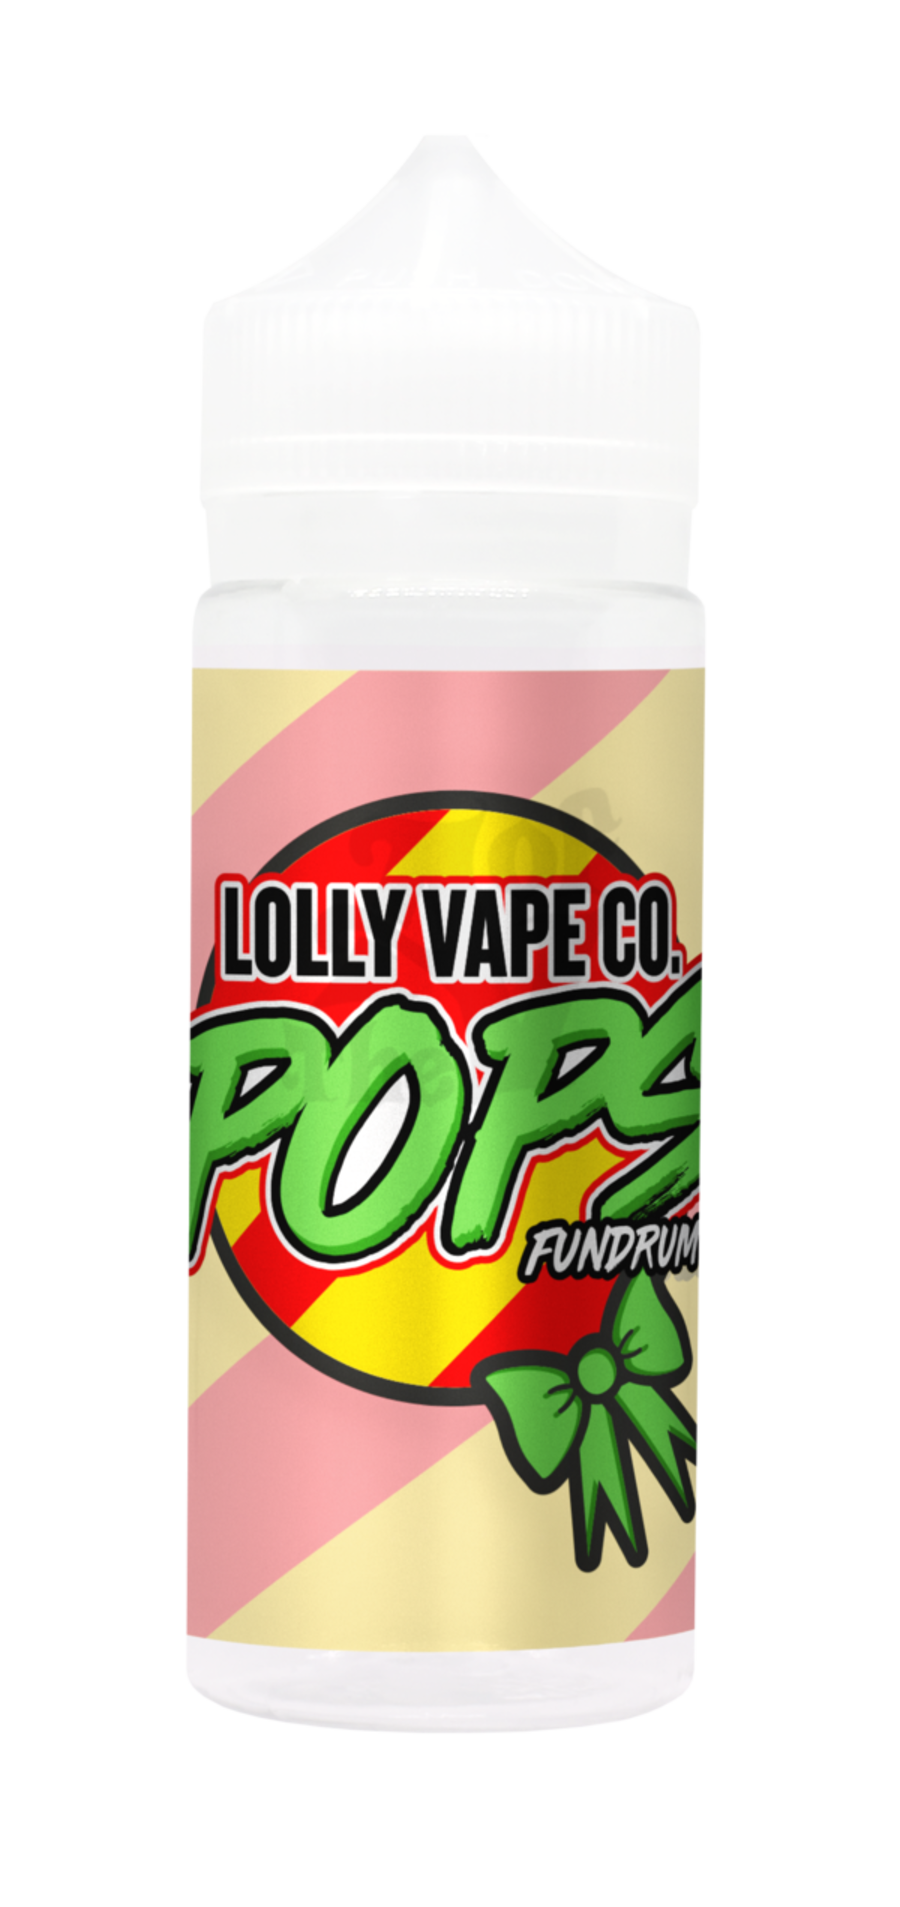 Fundrum By Lolly Vape Co Pop 100ml 0mg